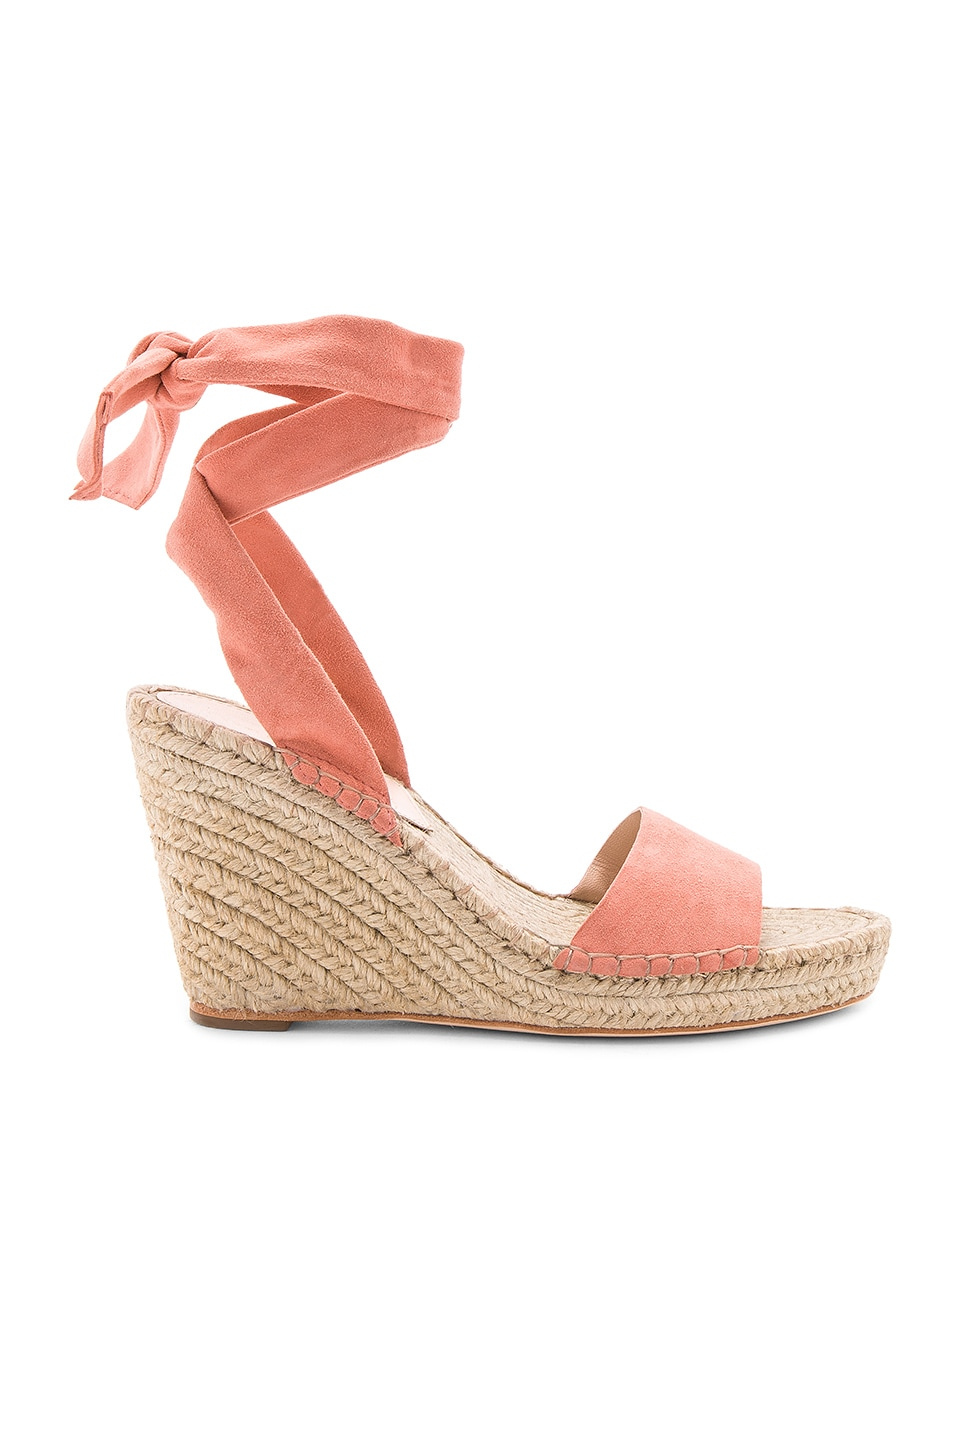 Harper Wedge by Loeffler Randall